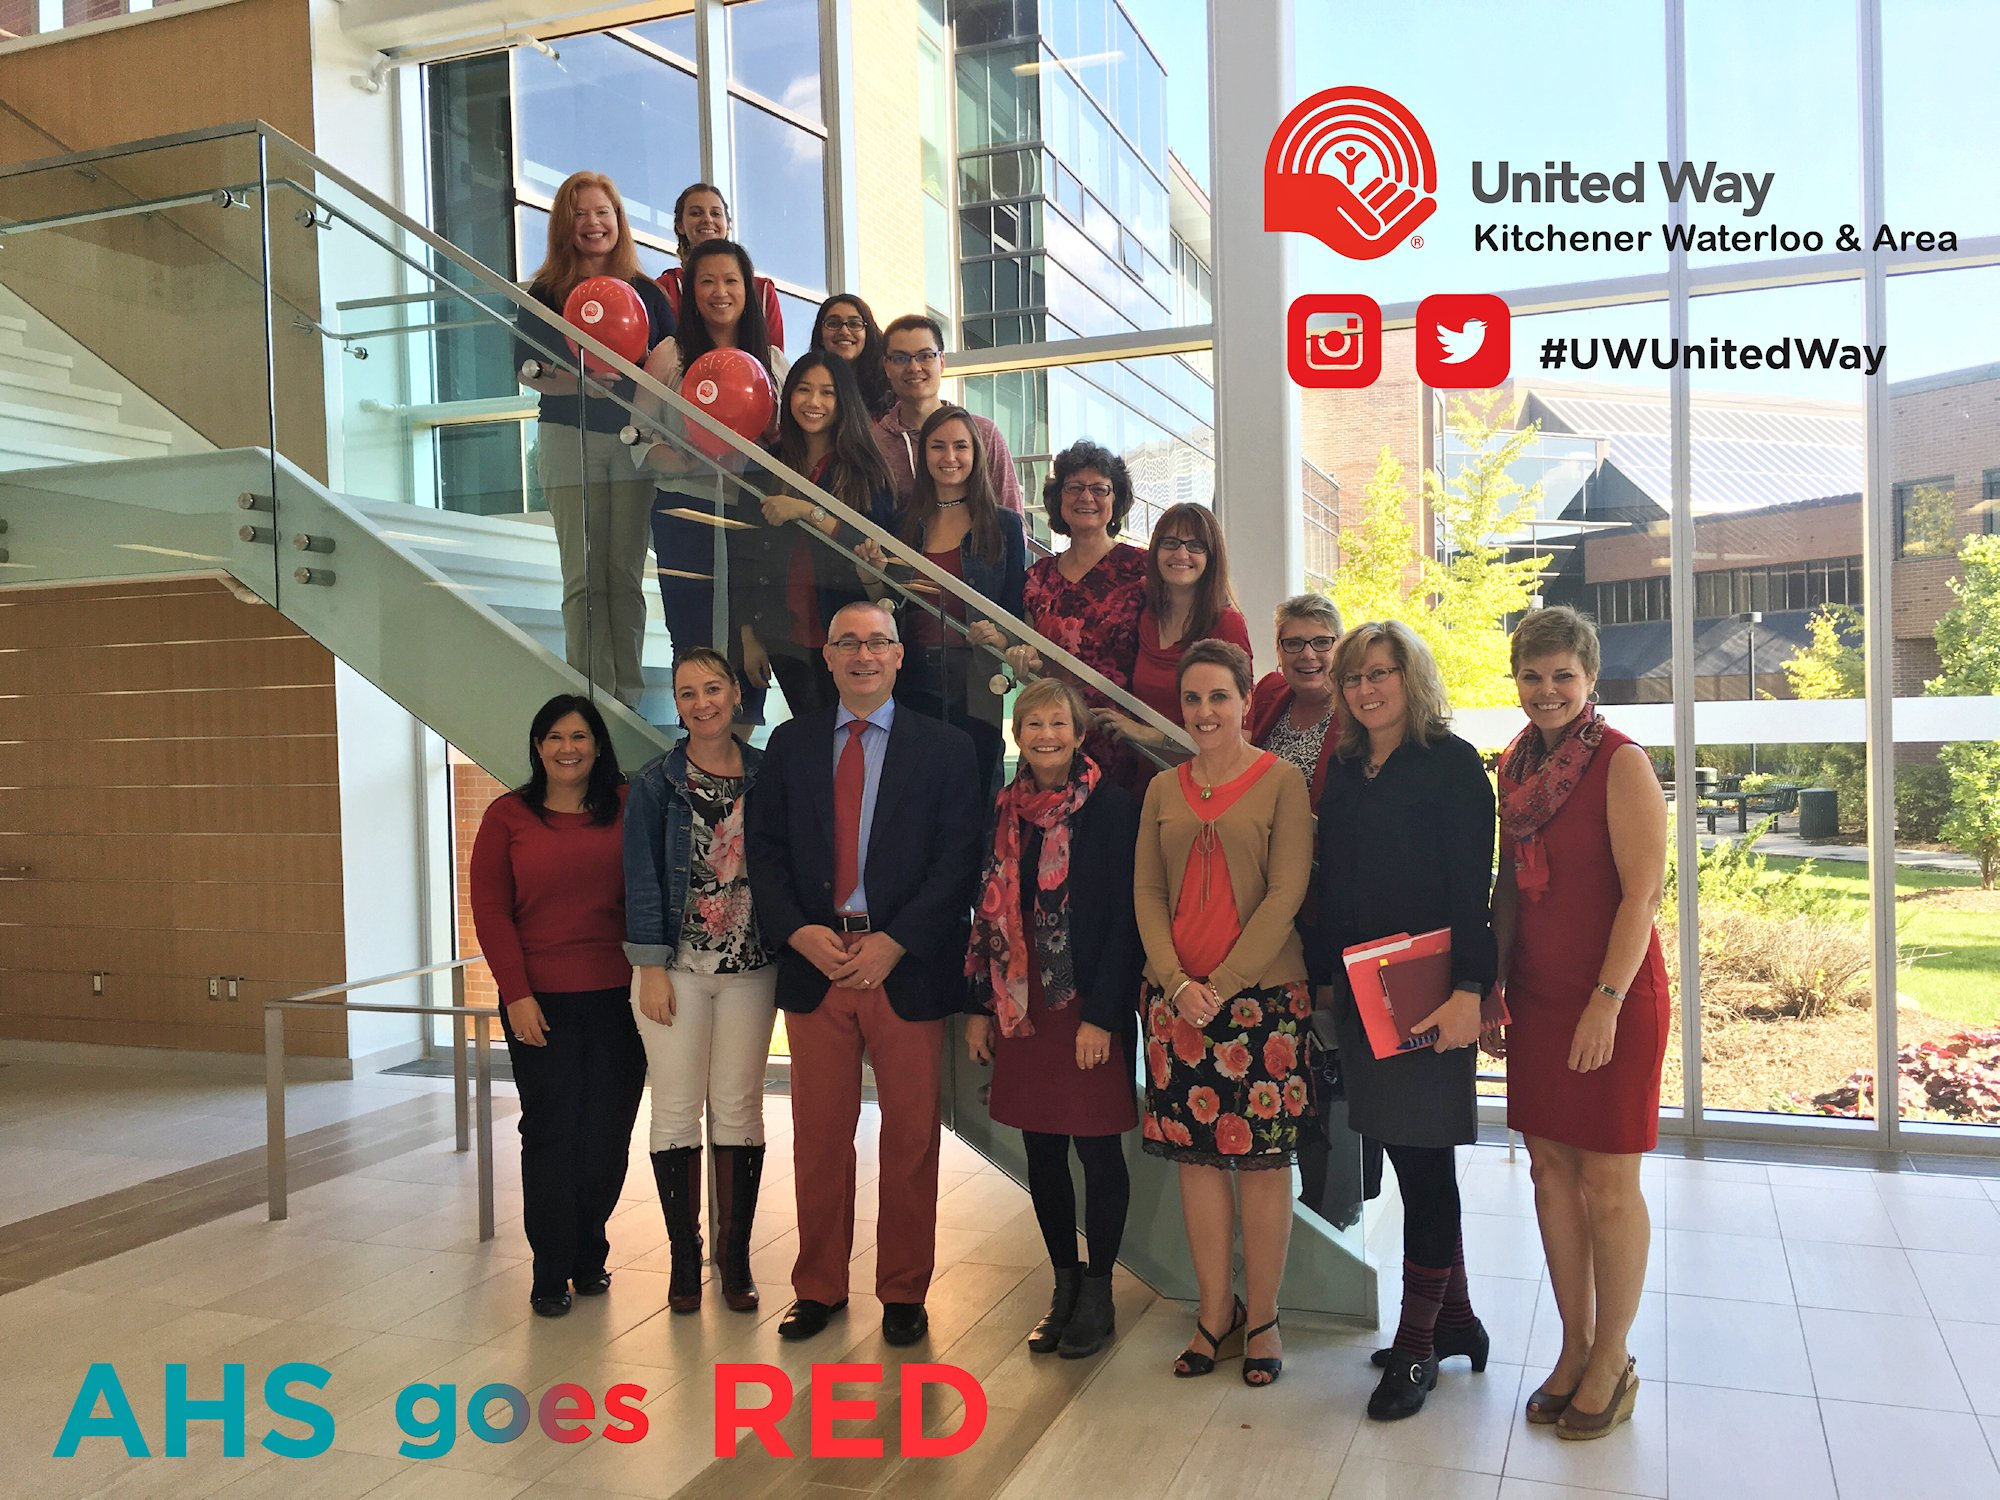 AHS Dean's Office - turning teal red for #UWUnitedWay ! https://t.co/wzItpqU80x